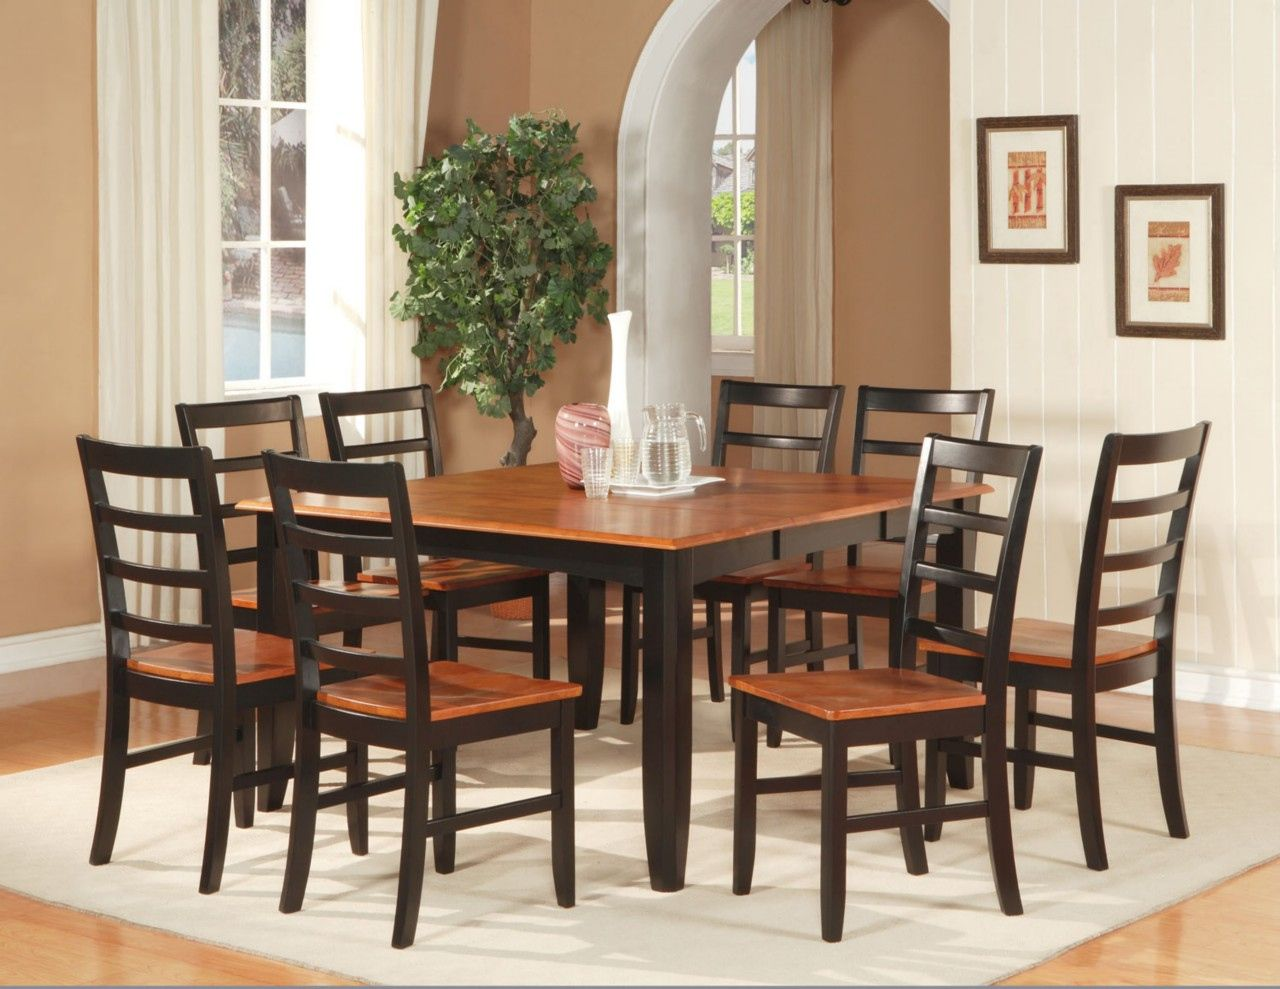 Dining Room Furniture Sets Cheap Beauteous Cheap Dining Room Furniture Sets  Modern Used Furniture Check 2018